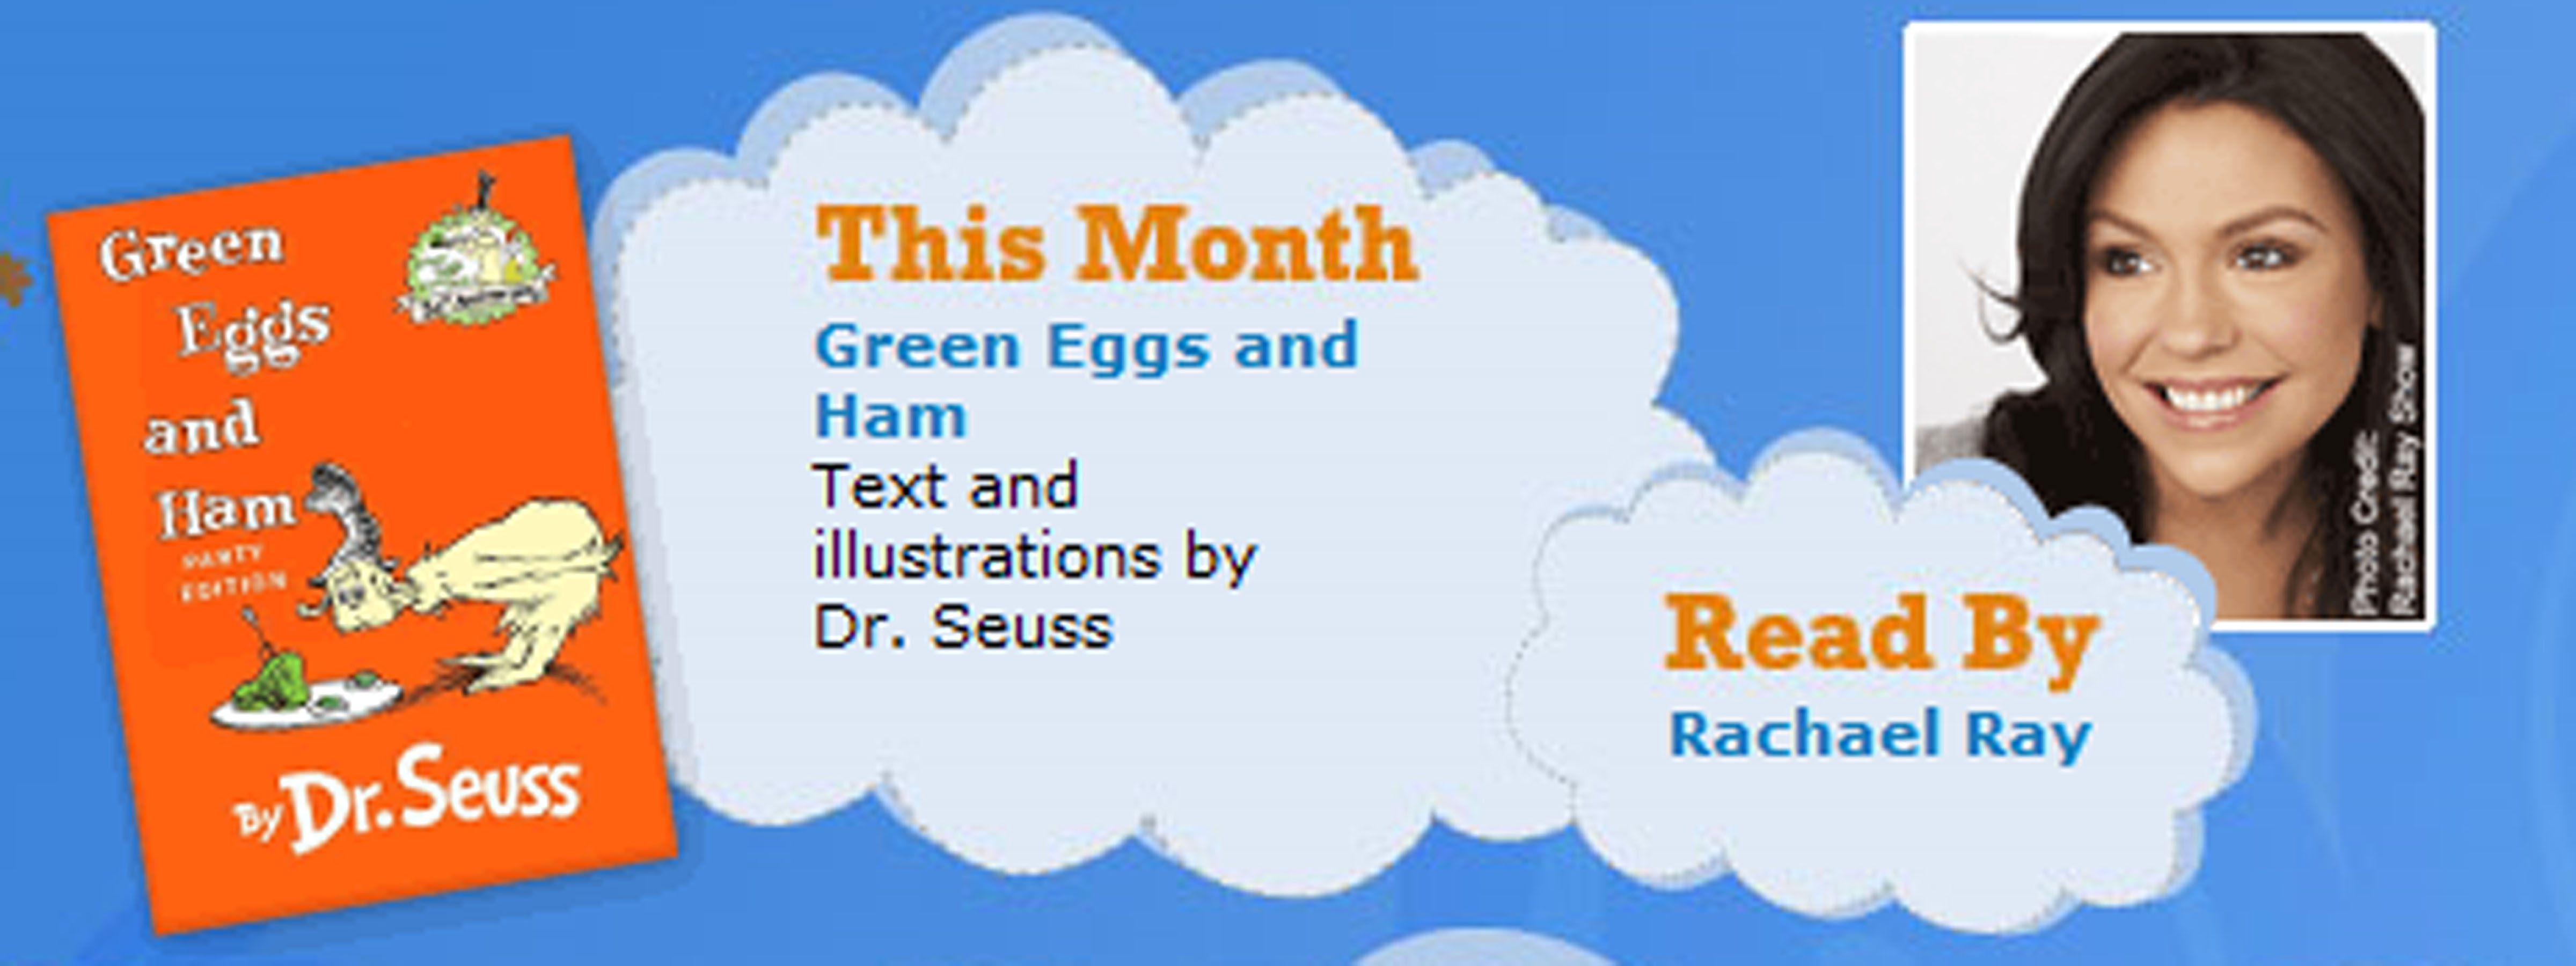 dr seuss green eggs and ham rachael ray